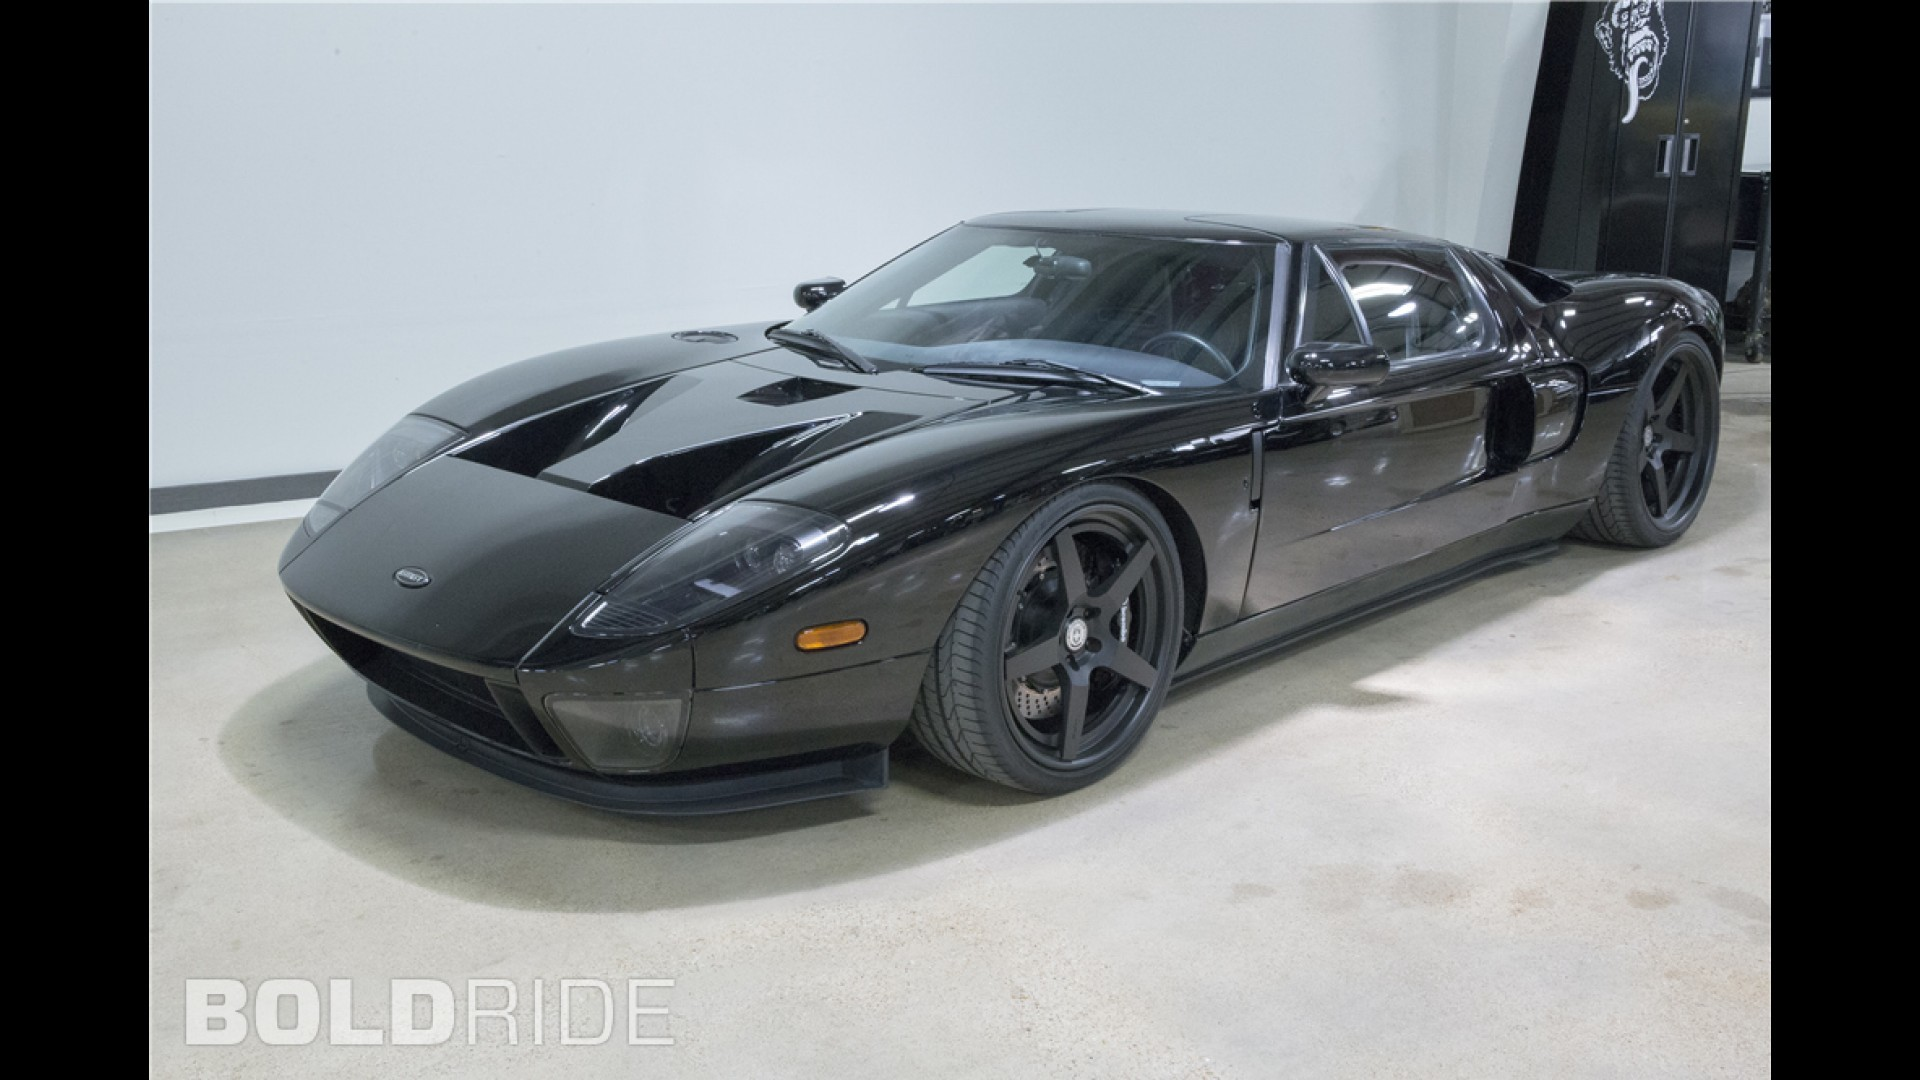 Gas Monkey Garage Ford GT product 2016-06-17 03:18:15